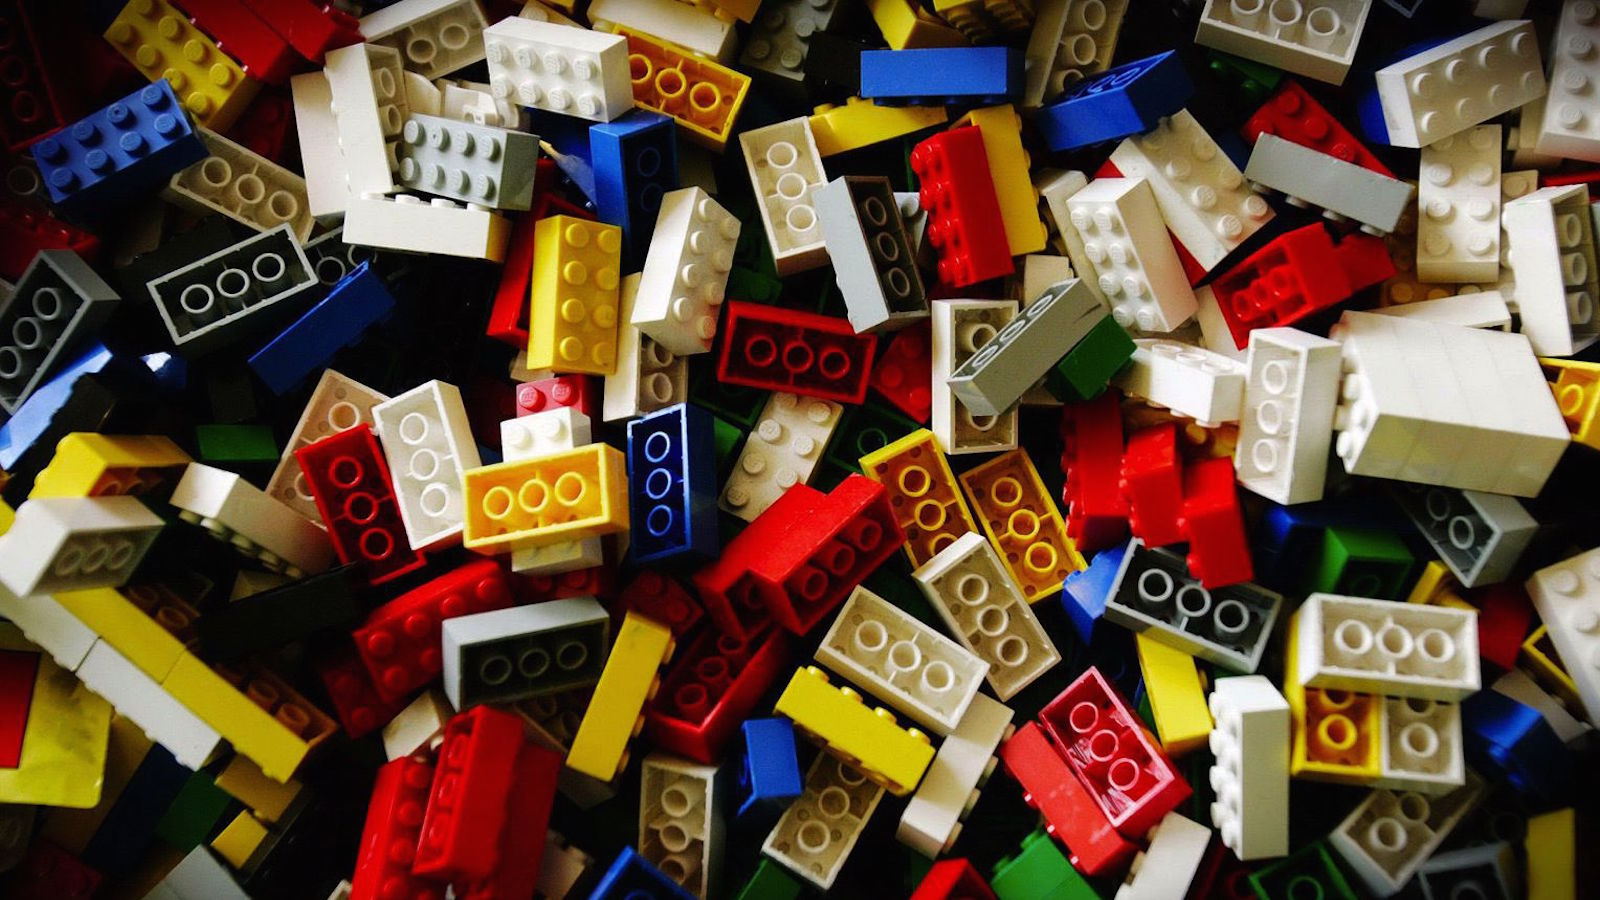 ** FILE ** Production is seen at the Lego factory in Billund, Denmark, in this Sept. 19, 2005 file photo. The Danish toy maker is having a hard time keeping up with demand for its popular plastic building blocks as toy stores stack their inventories for the Christmas season, a company official said Tuesday. The Denmark-based group has been trimming its staff at home and abroad since starting a restructuring program four years ago. (AP Photo/Anders Brohus, POLFOTO, file) ** DENMARK OUT **